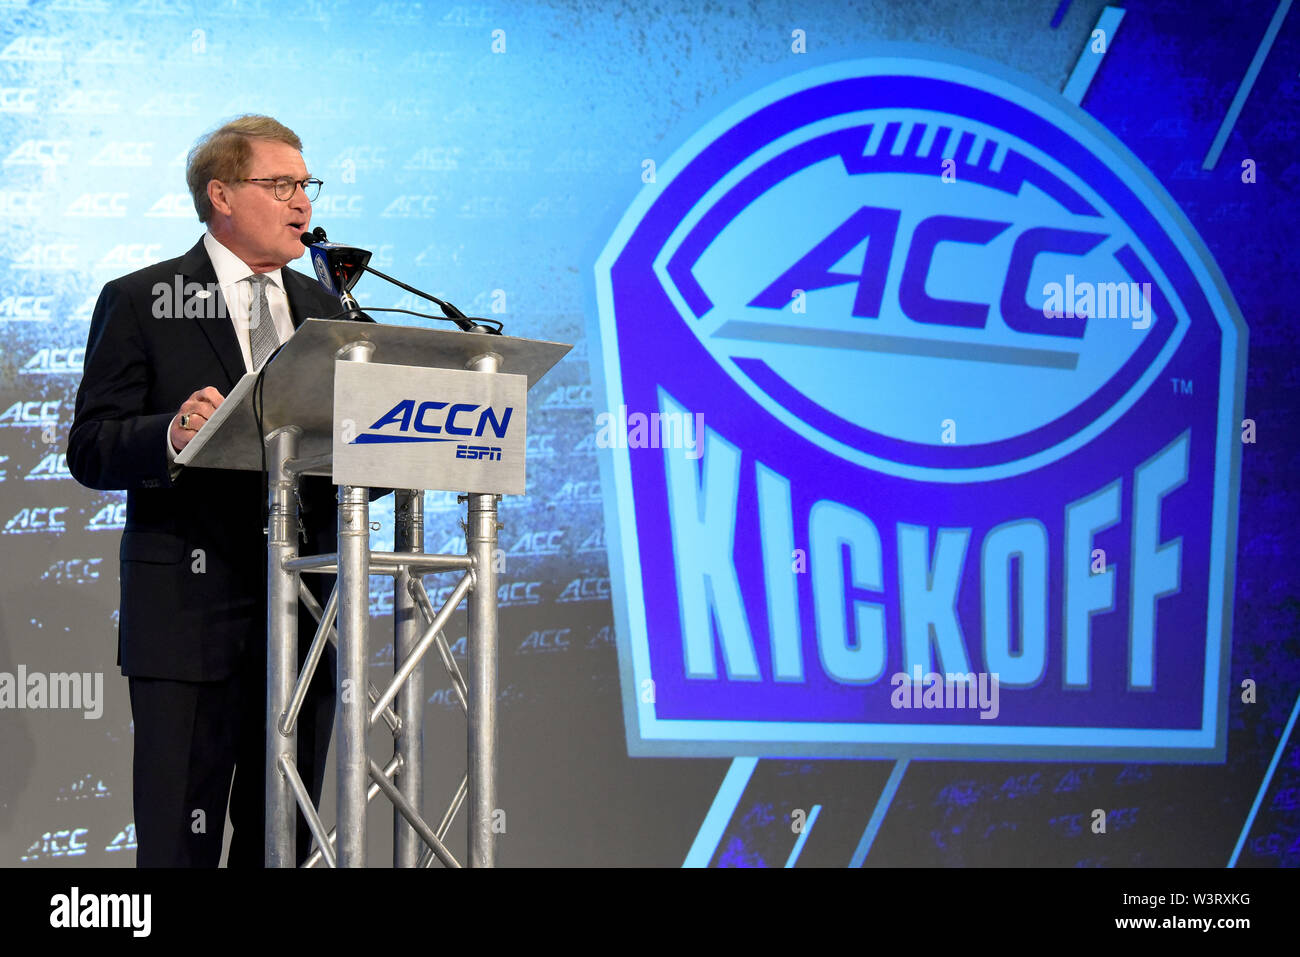 Charlotte, North Carolina, USA. 17th July, 2019. ACC Commissioner John Swofford, speaking during the Commissioners forum at the ACC Football Kickoff on July 17, 2019 at the Westin Hotels & Resorts in Charlotte, N.C. Credit: Ed Clemente/ZUMA Wire/Alamy Live News - Stock Image